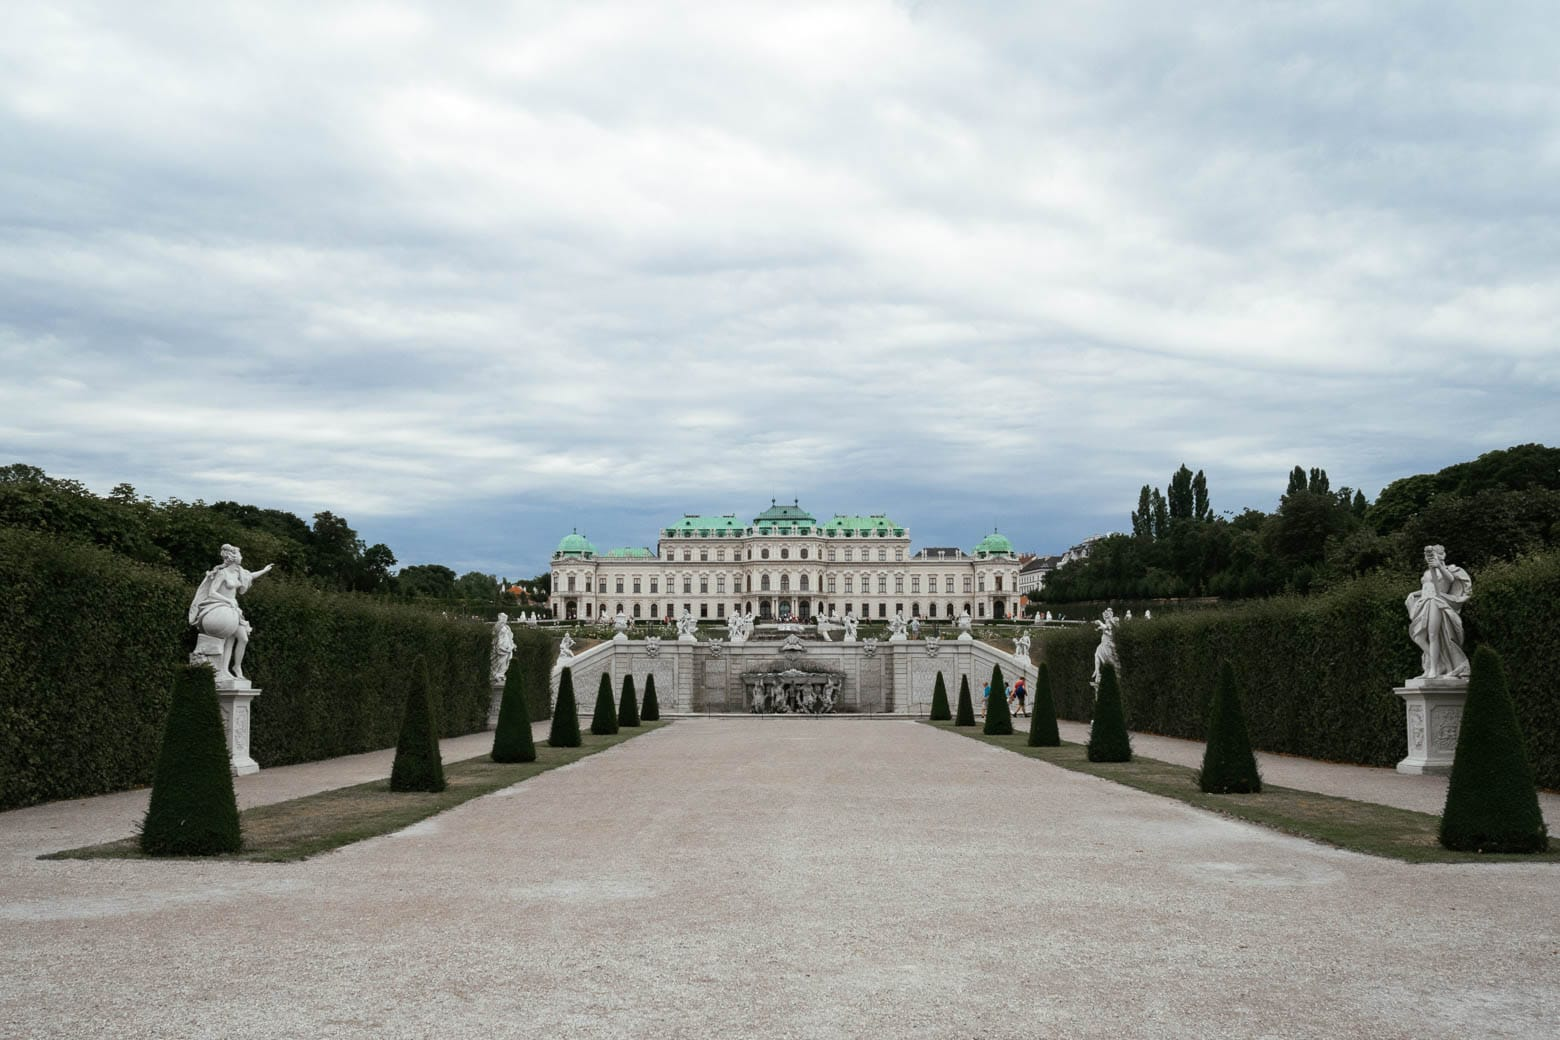 Belvedere Palace and formal gardens.